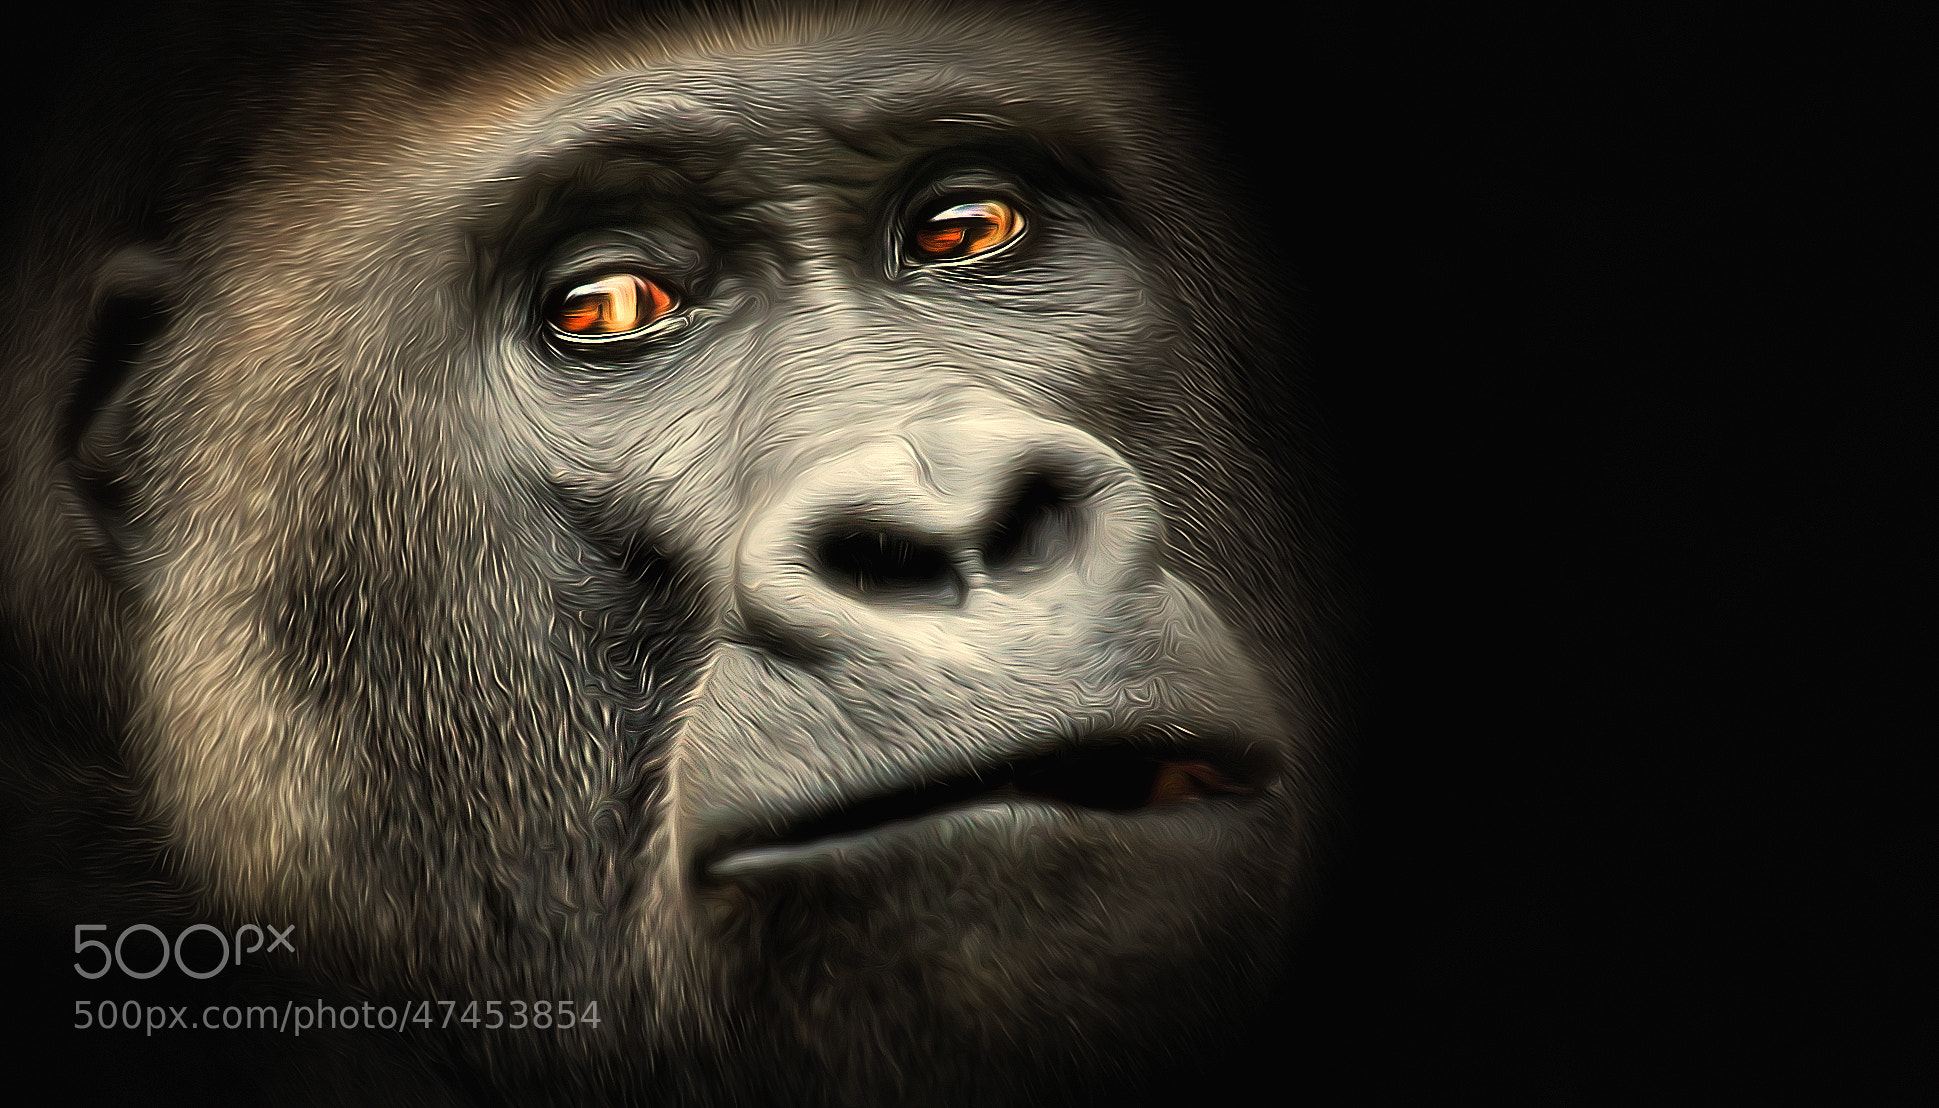 Photograph Gorilla by Detlef Knapp on 500px